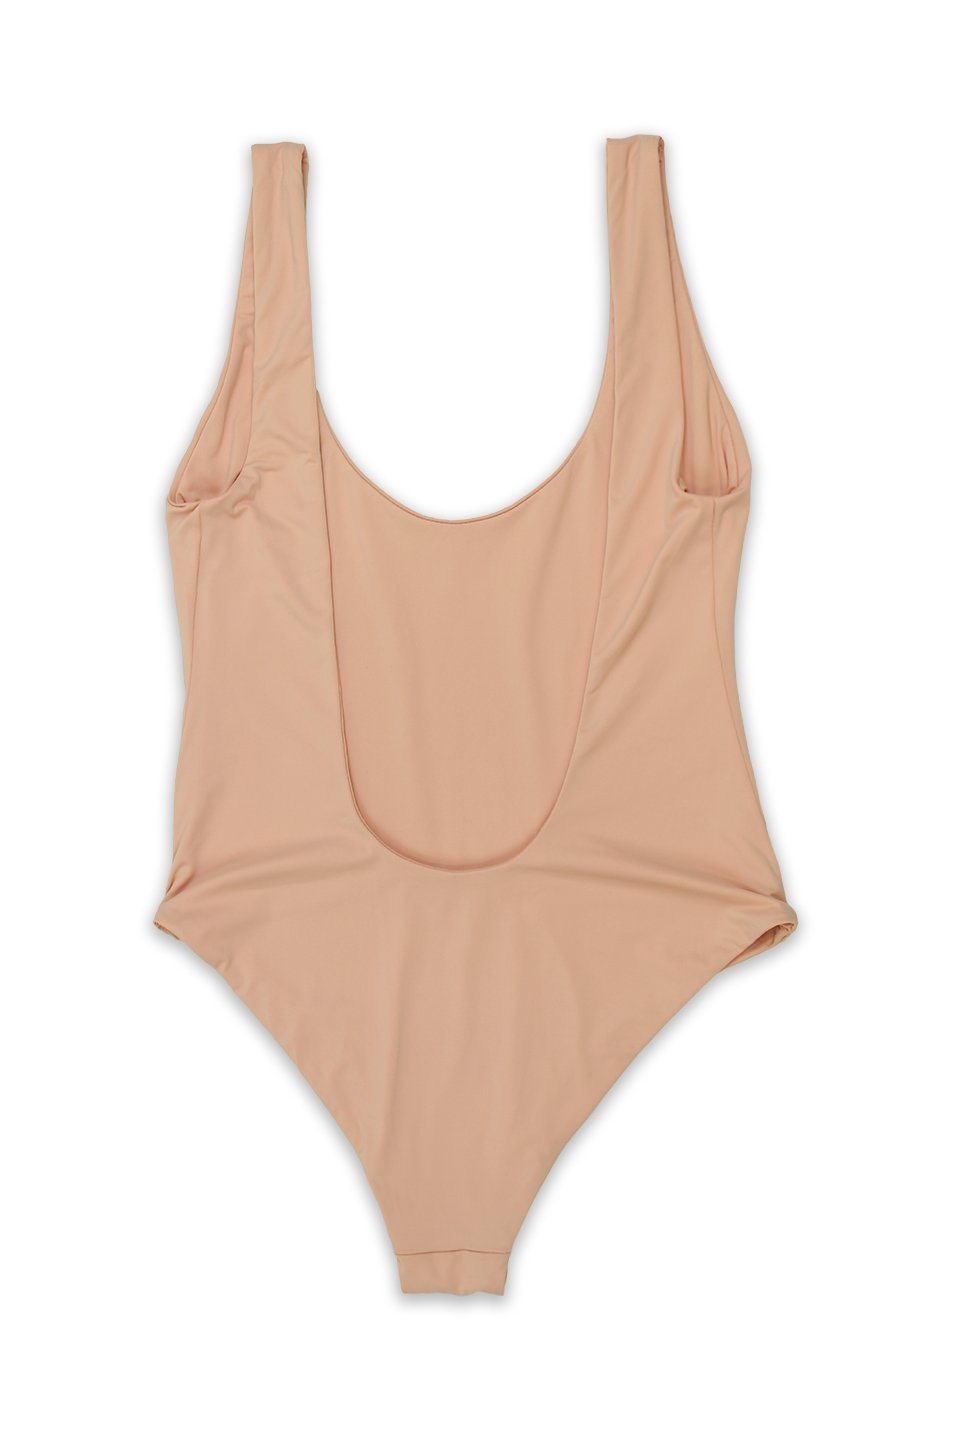 Cameo Seamless V-Cleavage Moderate Coverage One Piece